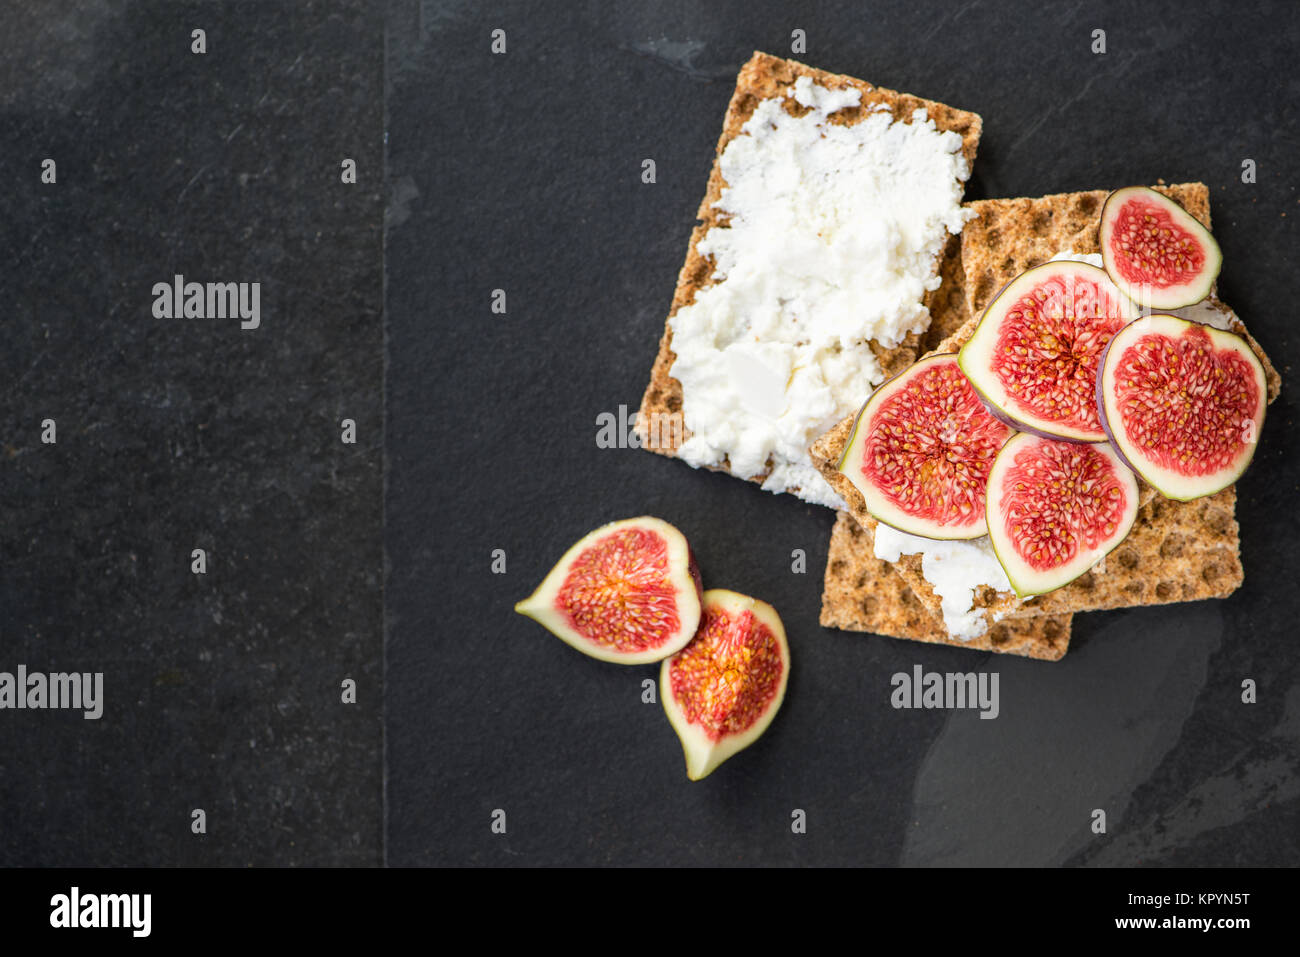 Healthy snack from wholegrain rye crispbread crackers, figs and ricotta cheese on dark slate board - Stock Image